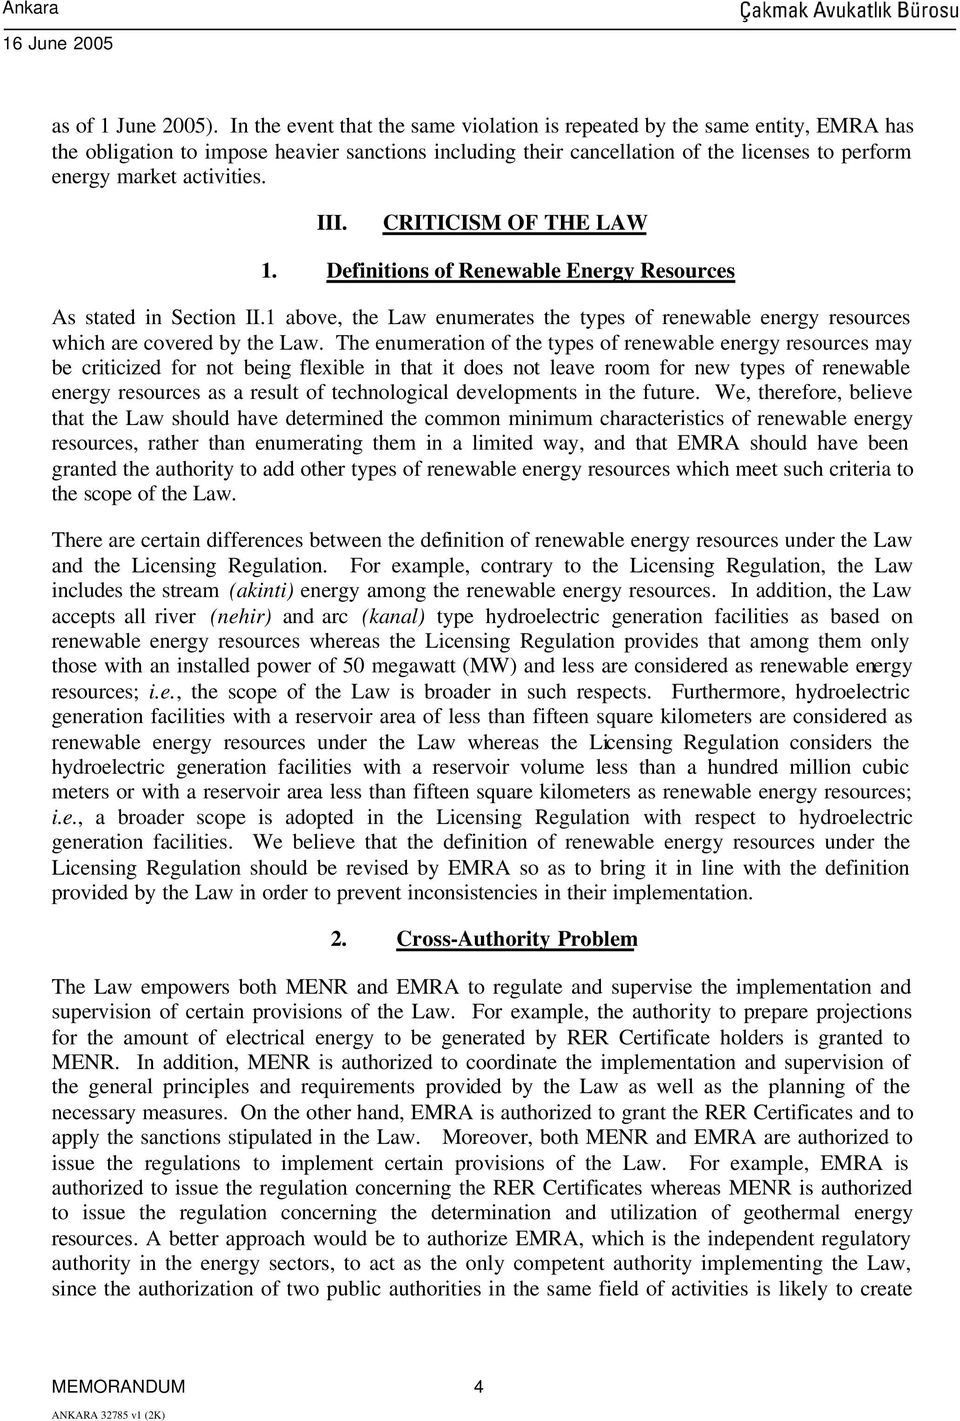 activities. III. CRITICISM OF THE LAW 1. Definitions of Renewable Energy Resources As stated in Section II.